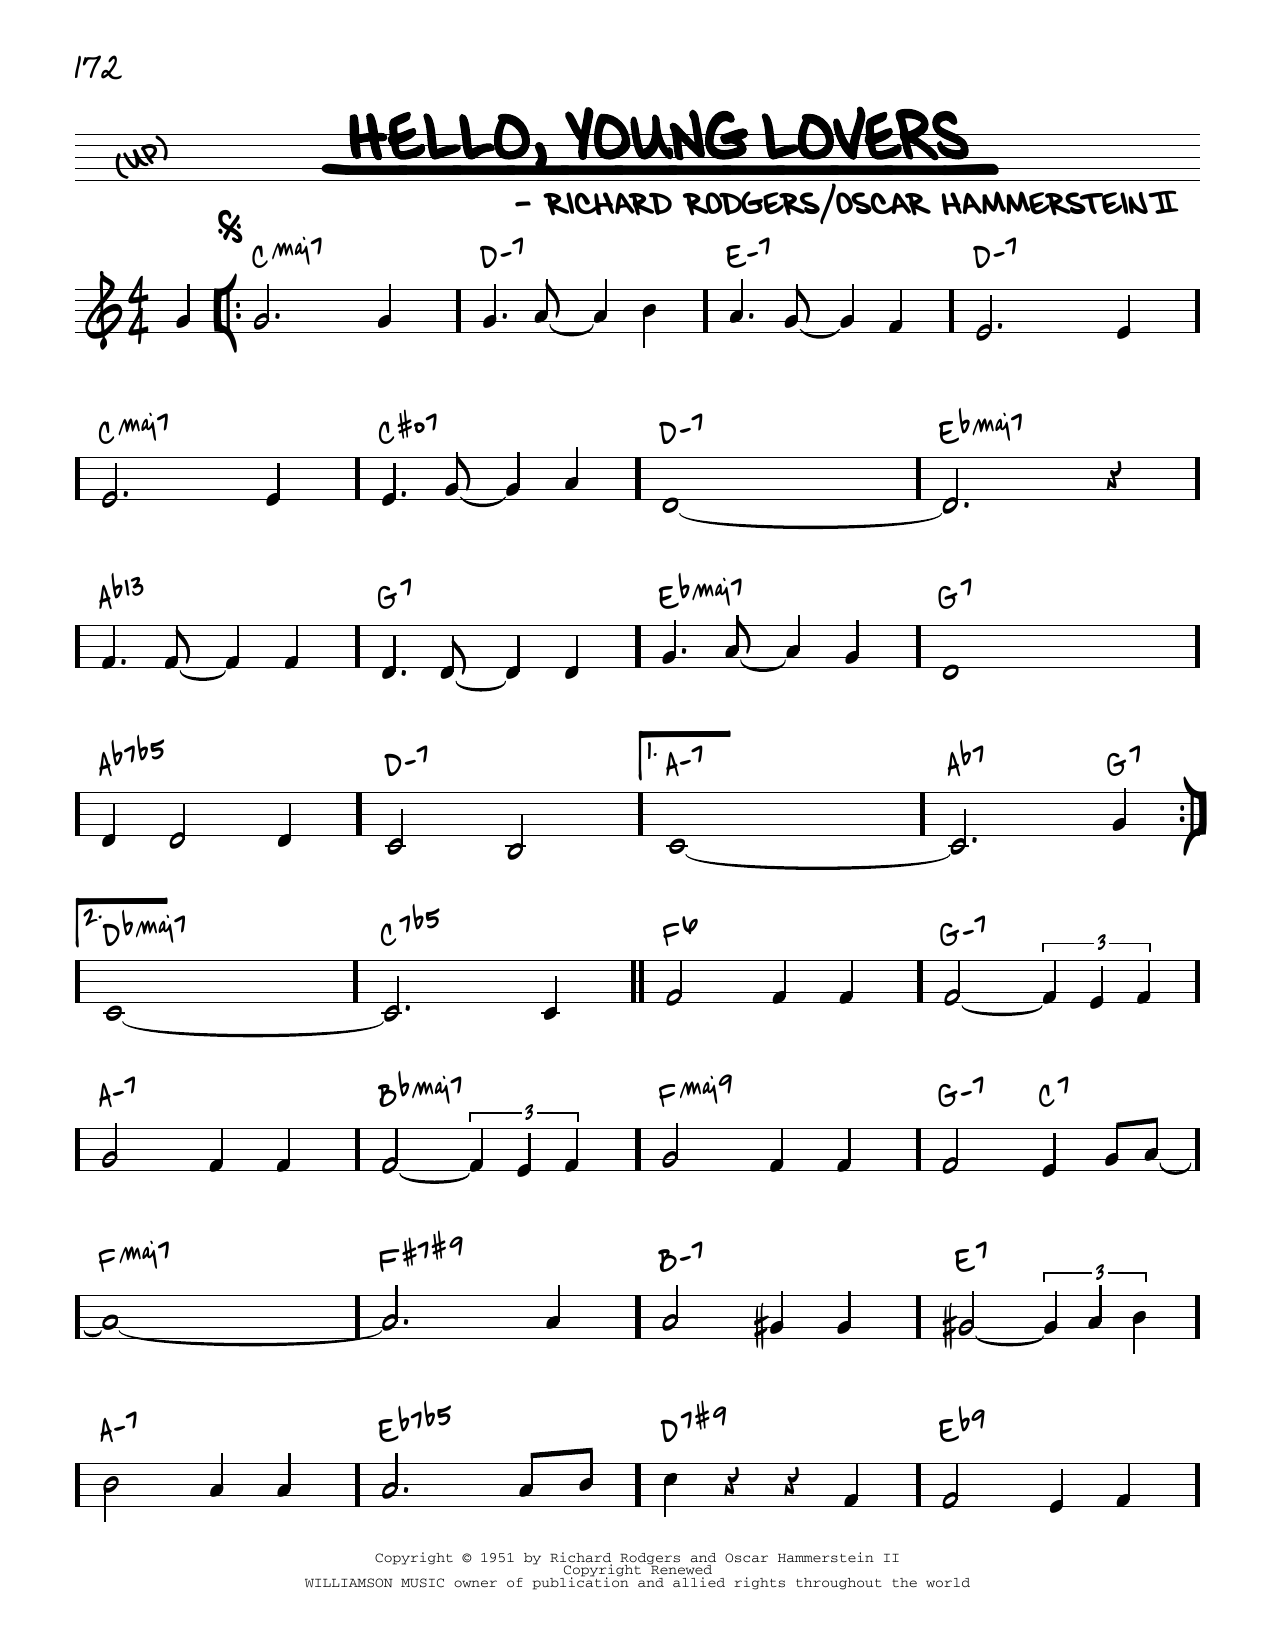 Rodgers & Hammerstein Hello, Young Lovers [Reharmonized version] (from The King And I) (arr. Jack Grassel) sheet music notes printable PDF score